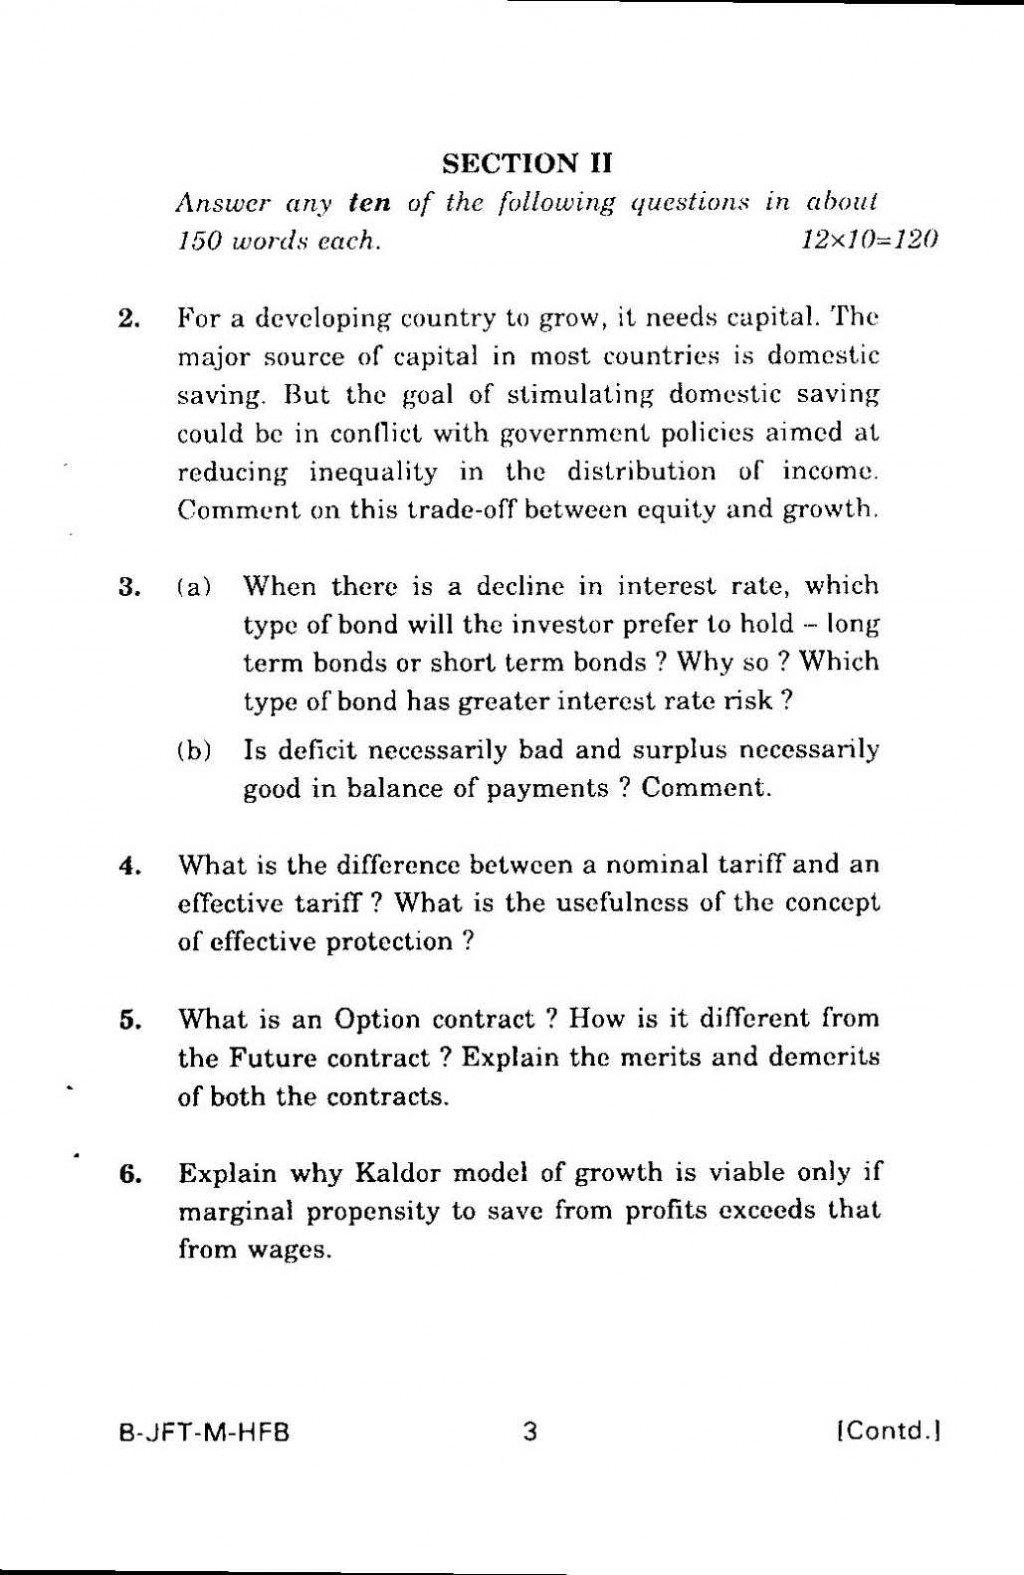 004 Concept Essay Examples Economics Admissions Background College Indian Economic Service Exam General Paper Ii Previous Years Question P Information Personal Macalester Family Stunning Topic Large